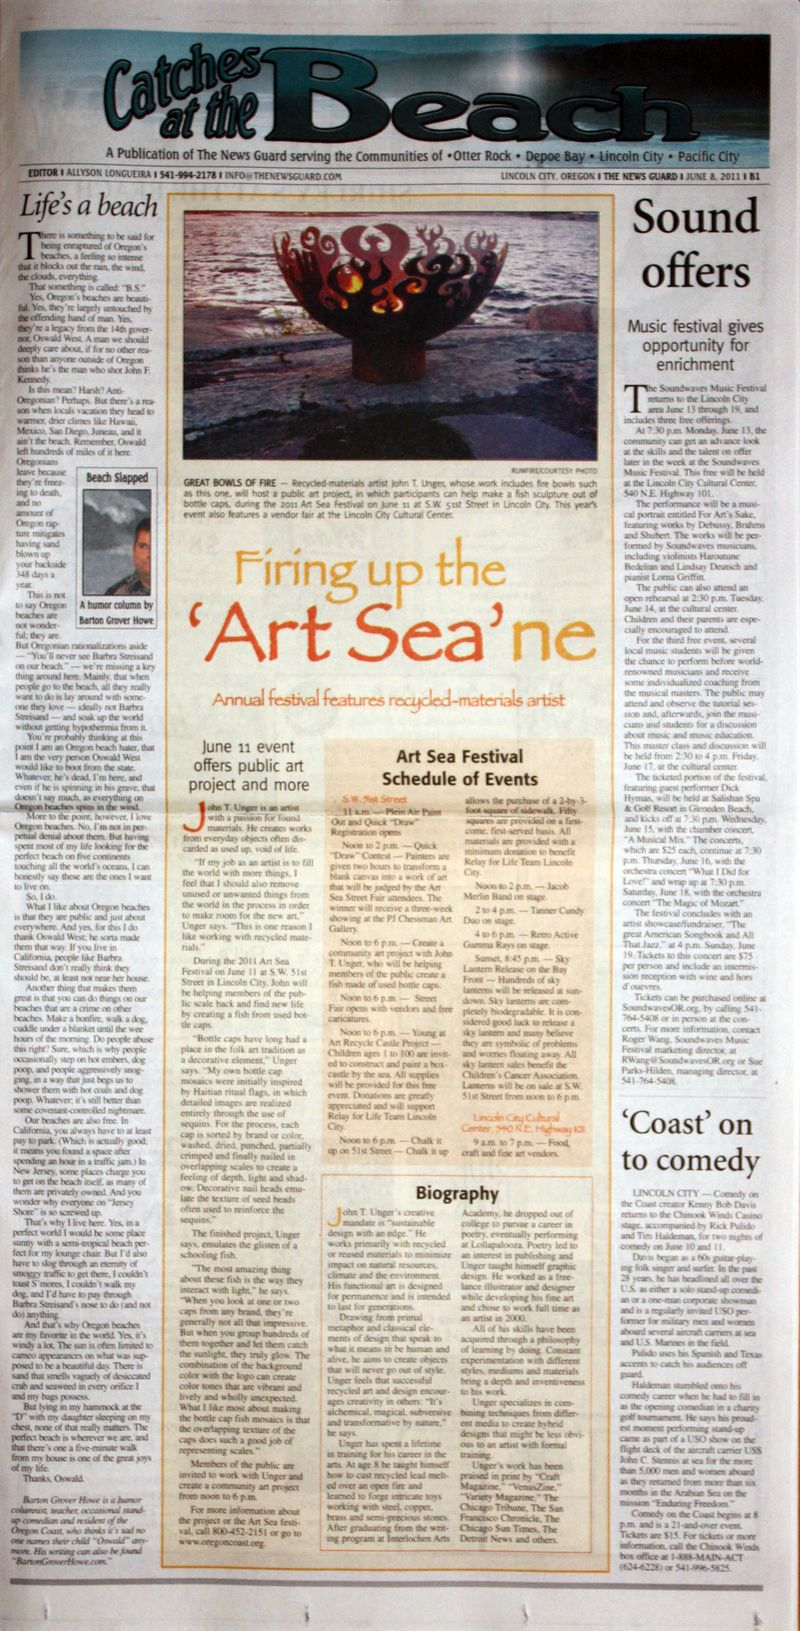 """Firing up the 'Art Sea'ne."" The News Guard [Lincoln City, OR] 8 June 2011: Front Cover, B1. Print."